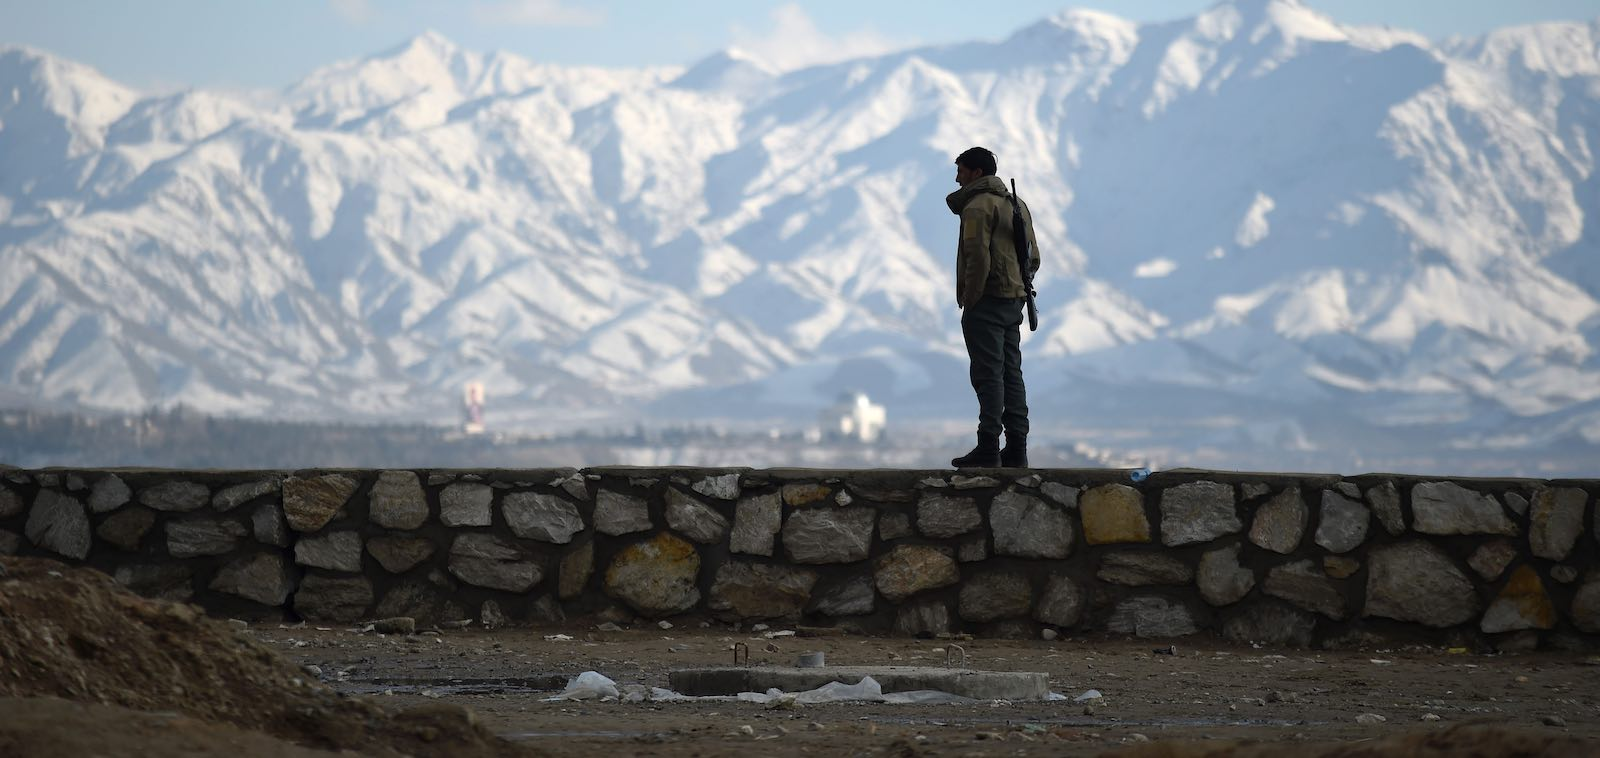 An Afghan policeman at Wazir Akbar Khan hilltop in Kabul in February (Photo: Wakil Kohsar via Getty)